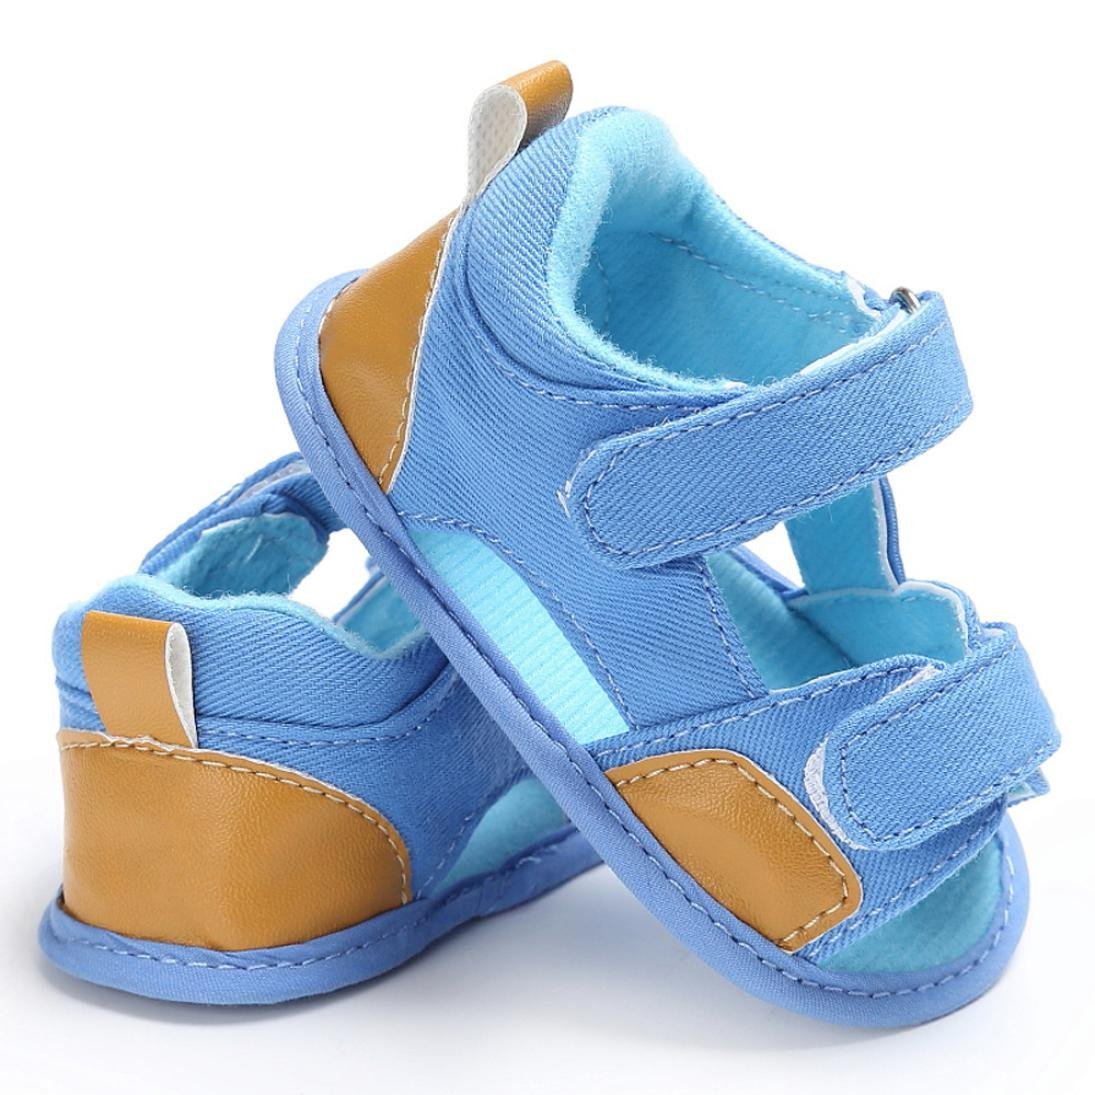 Voberry Toddler Baby Girl Boys Canvas Soft Sole Crib Sandals Shoes